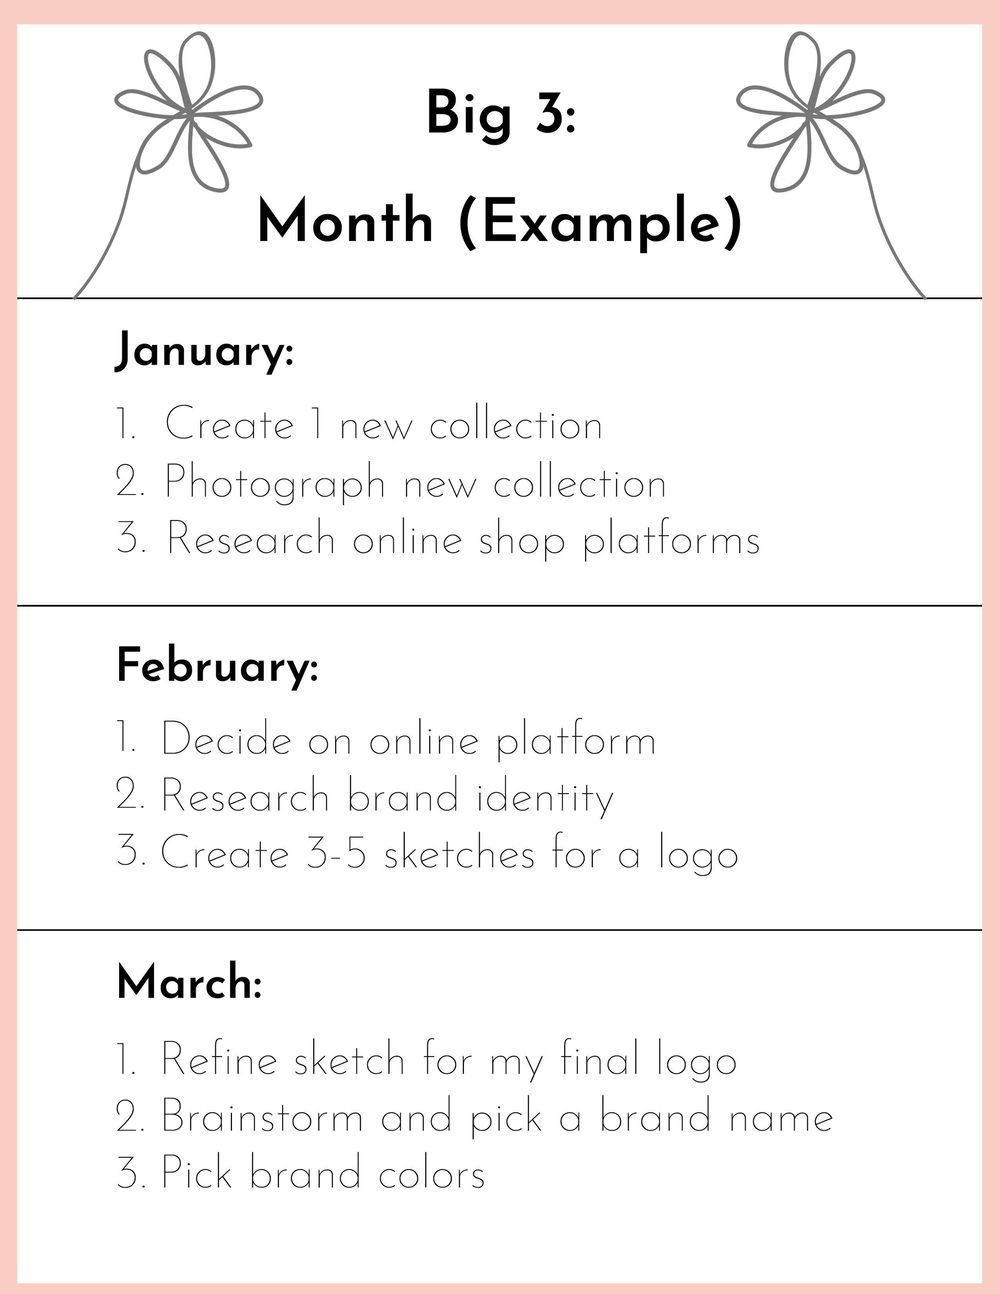 Sample Big 3 Goals and Schedule - image 2 - student project